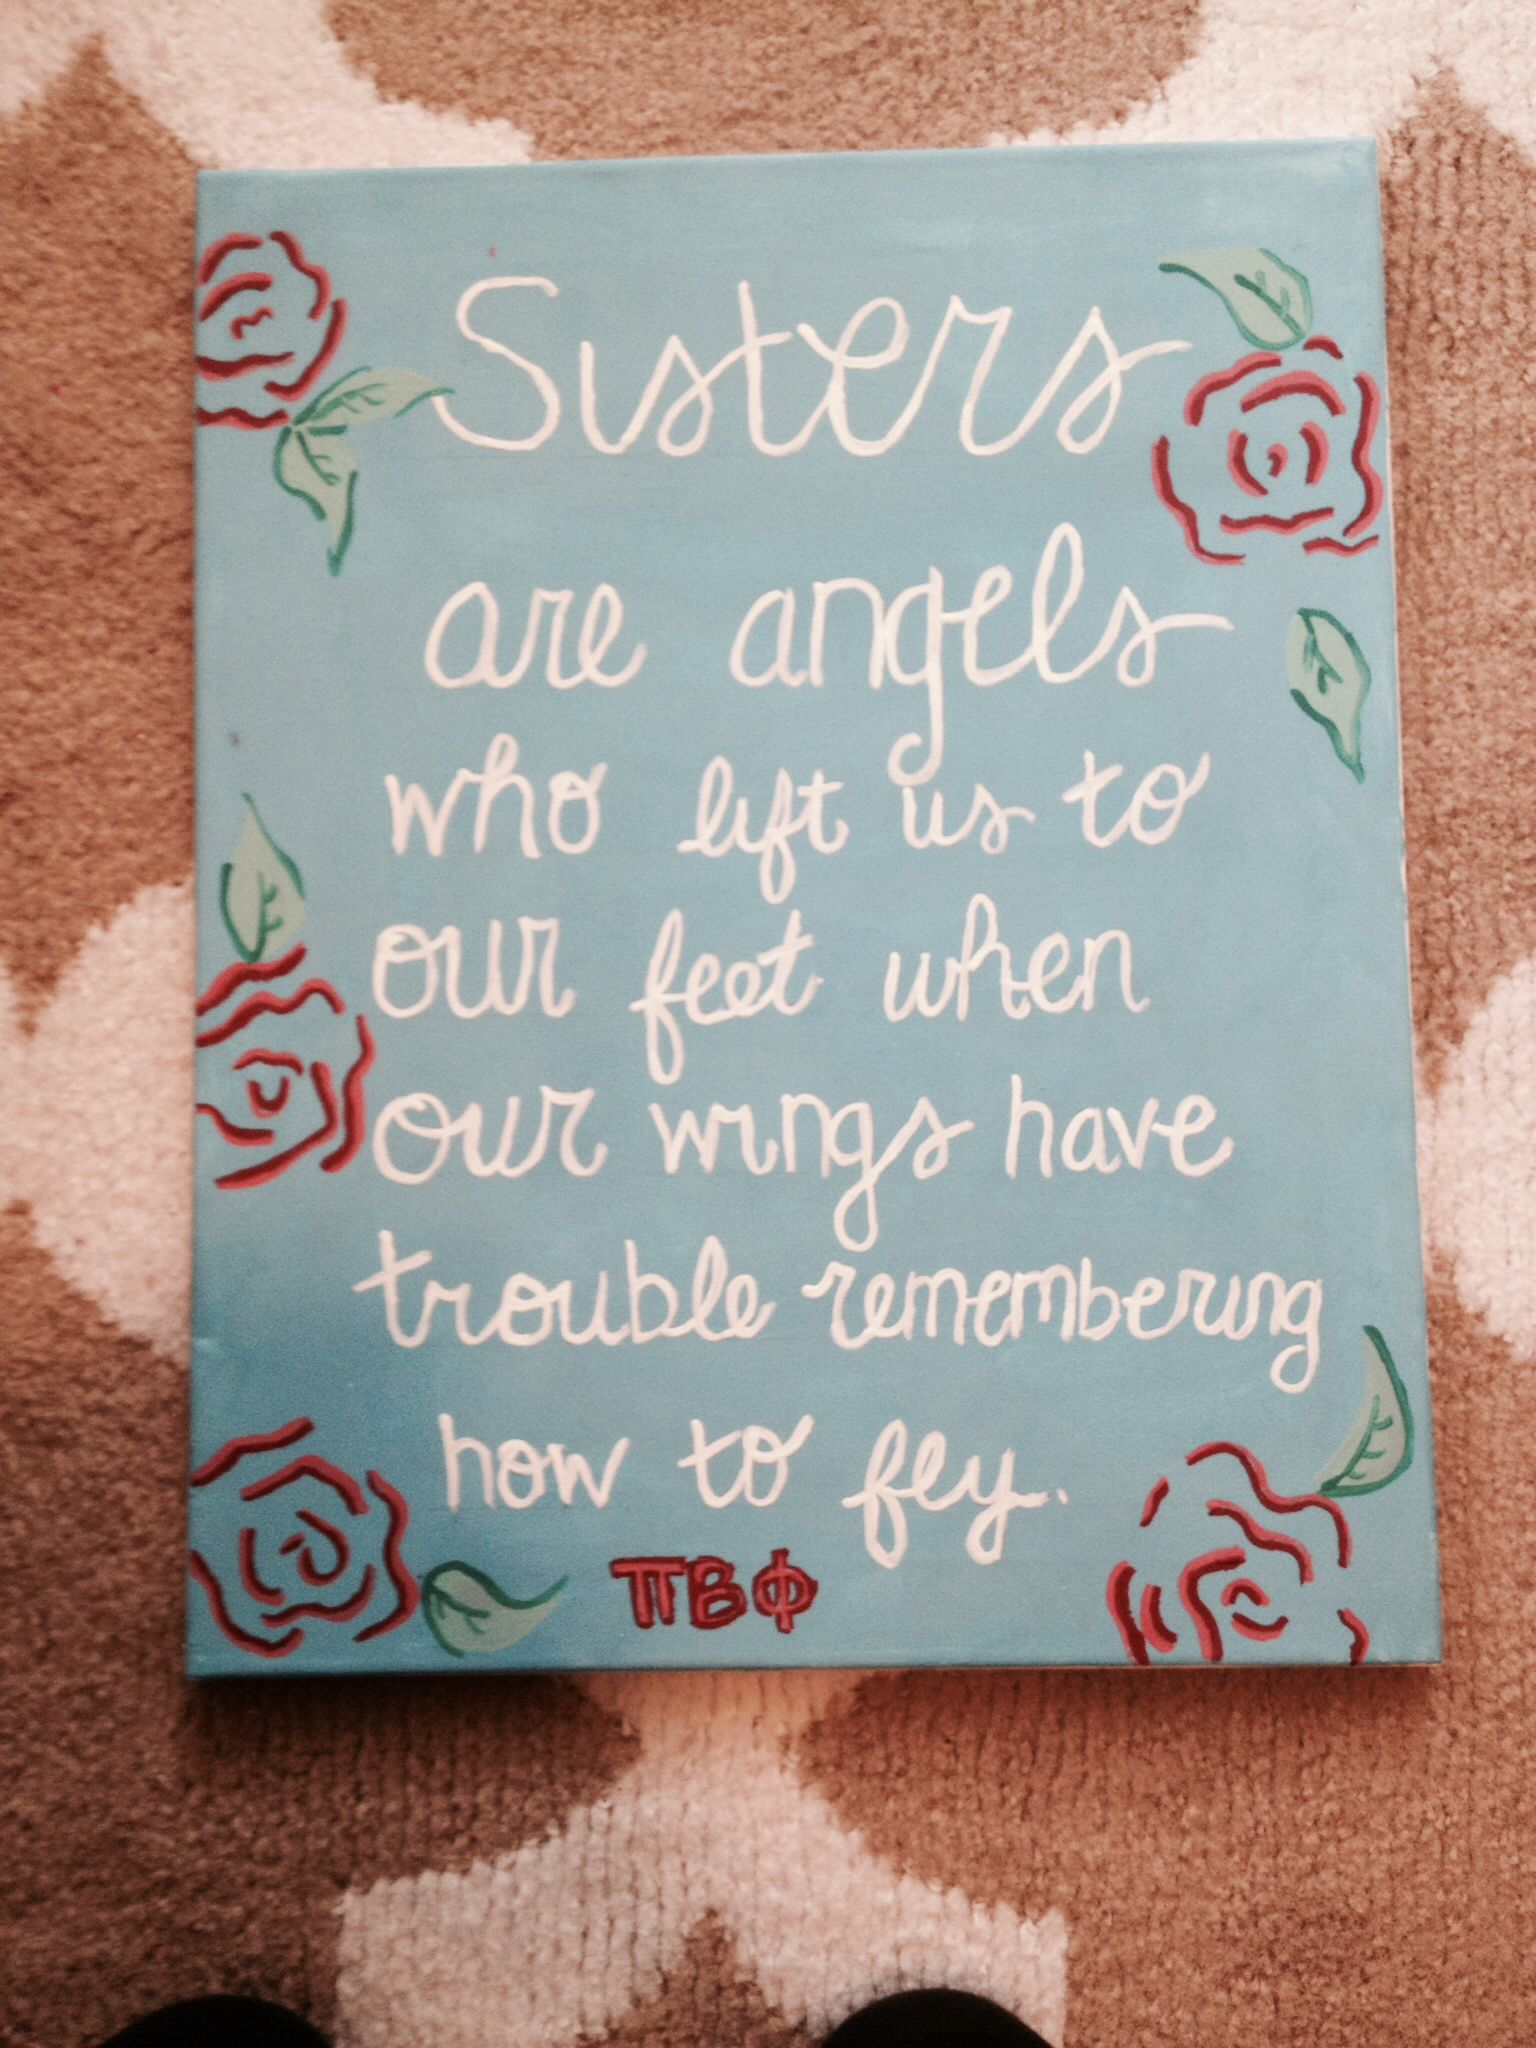 Pi phi quote canvas. Big little | My crafts | Pi beta phi ...